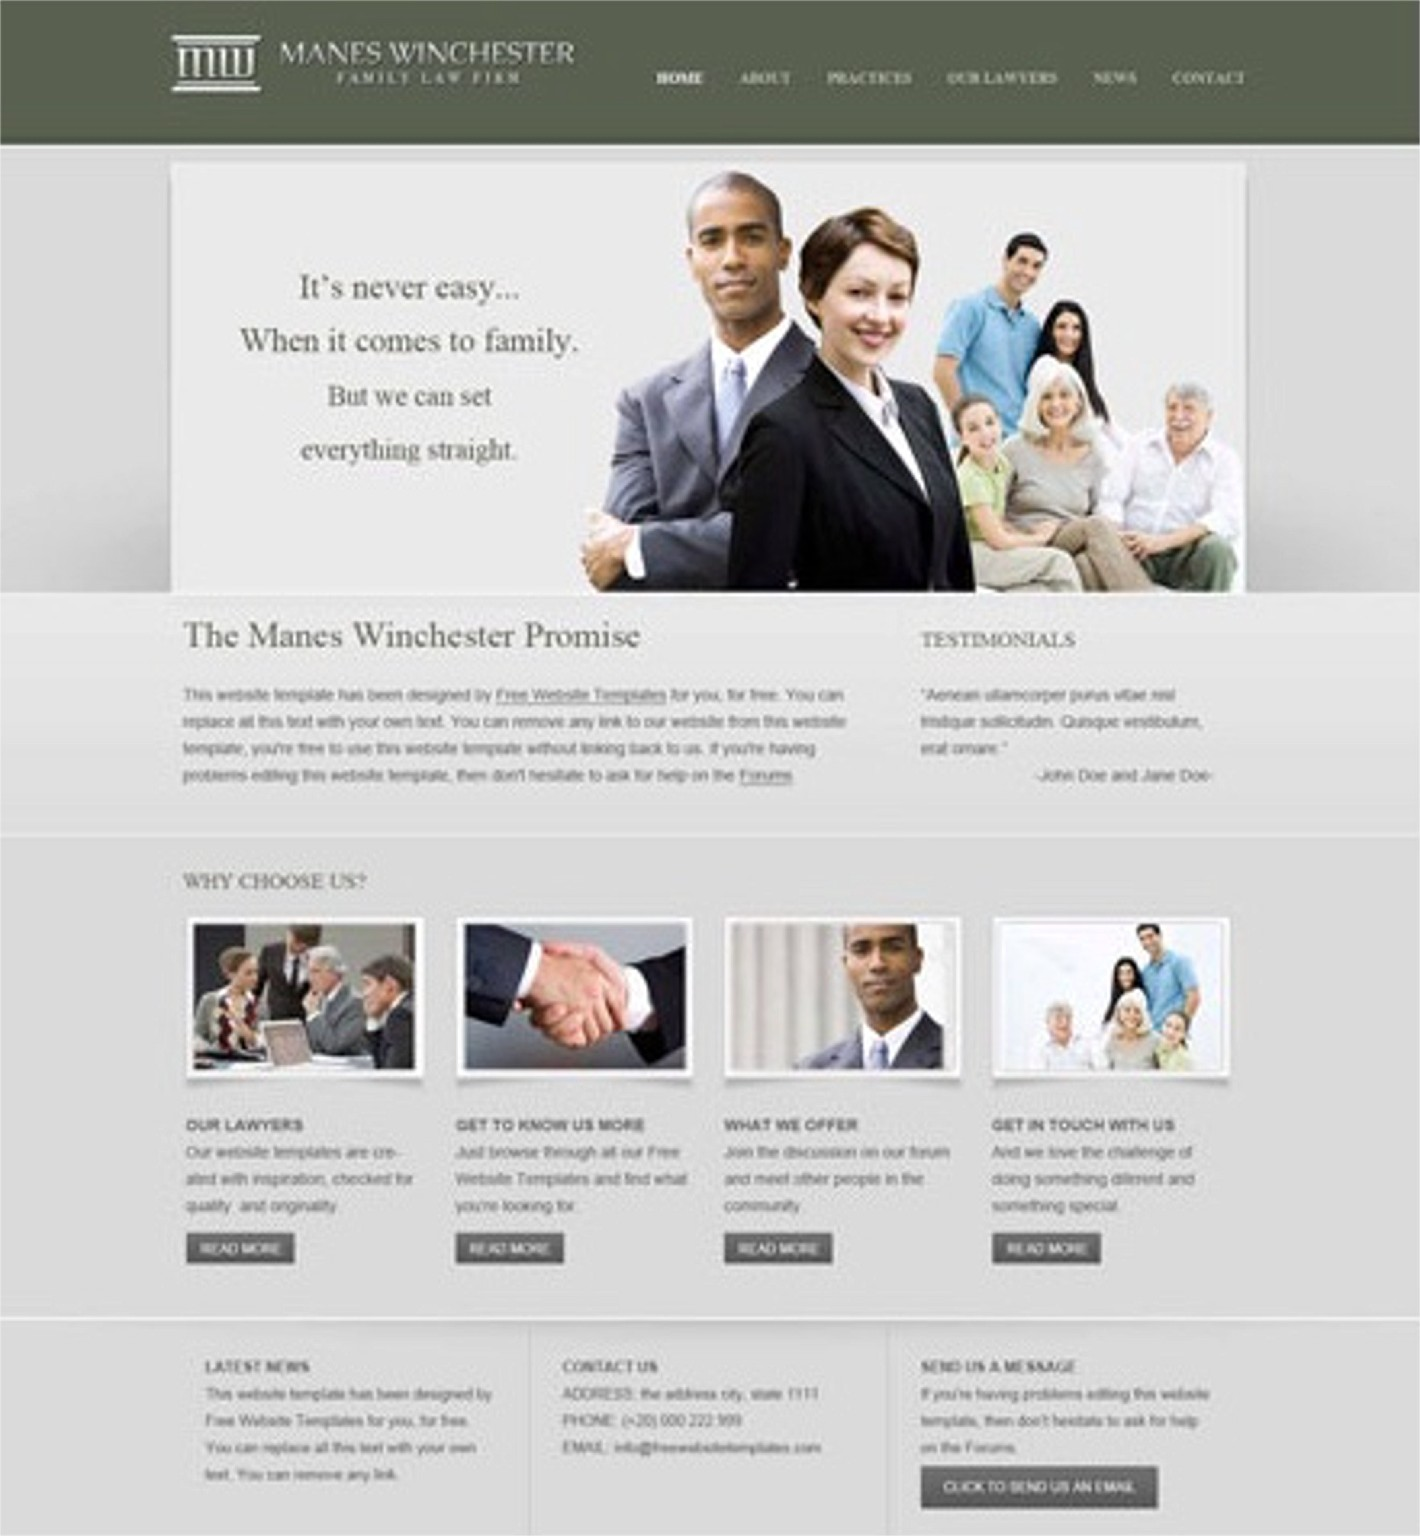 JRL-Enterprises LLC Web Templates10127